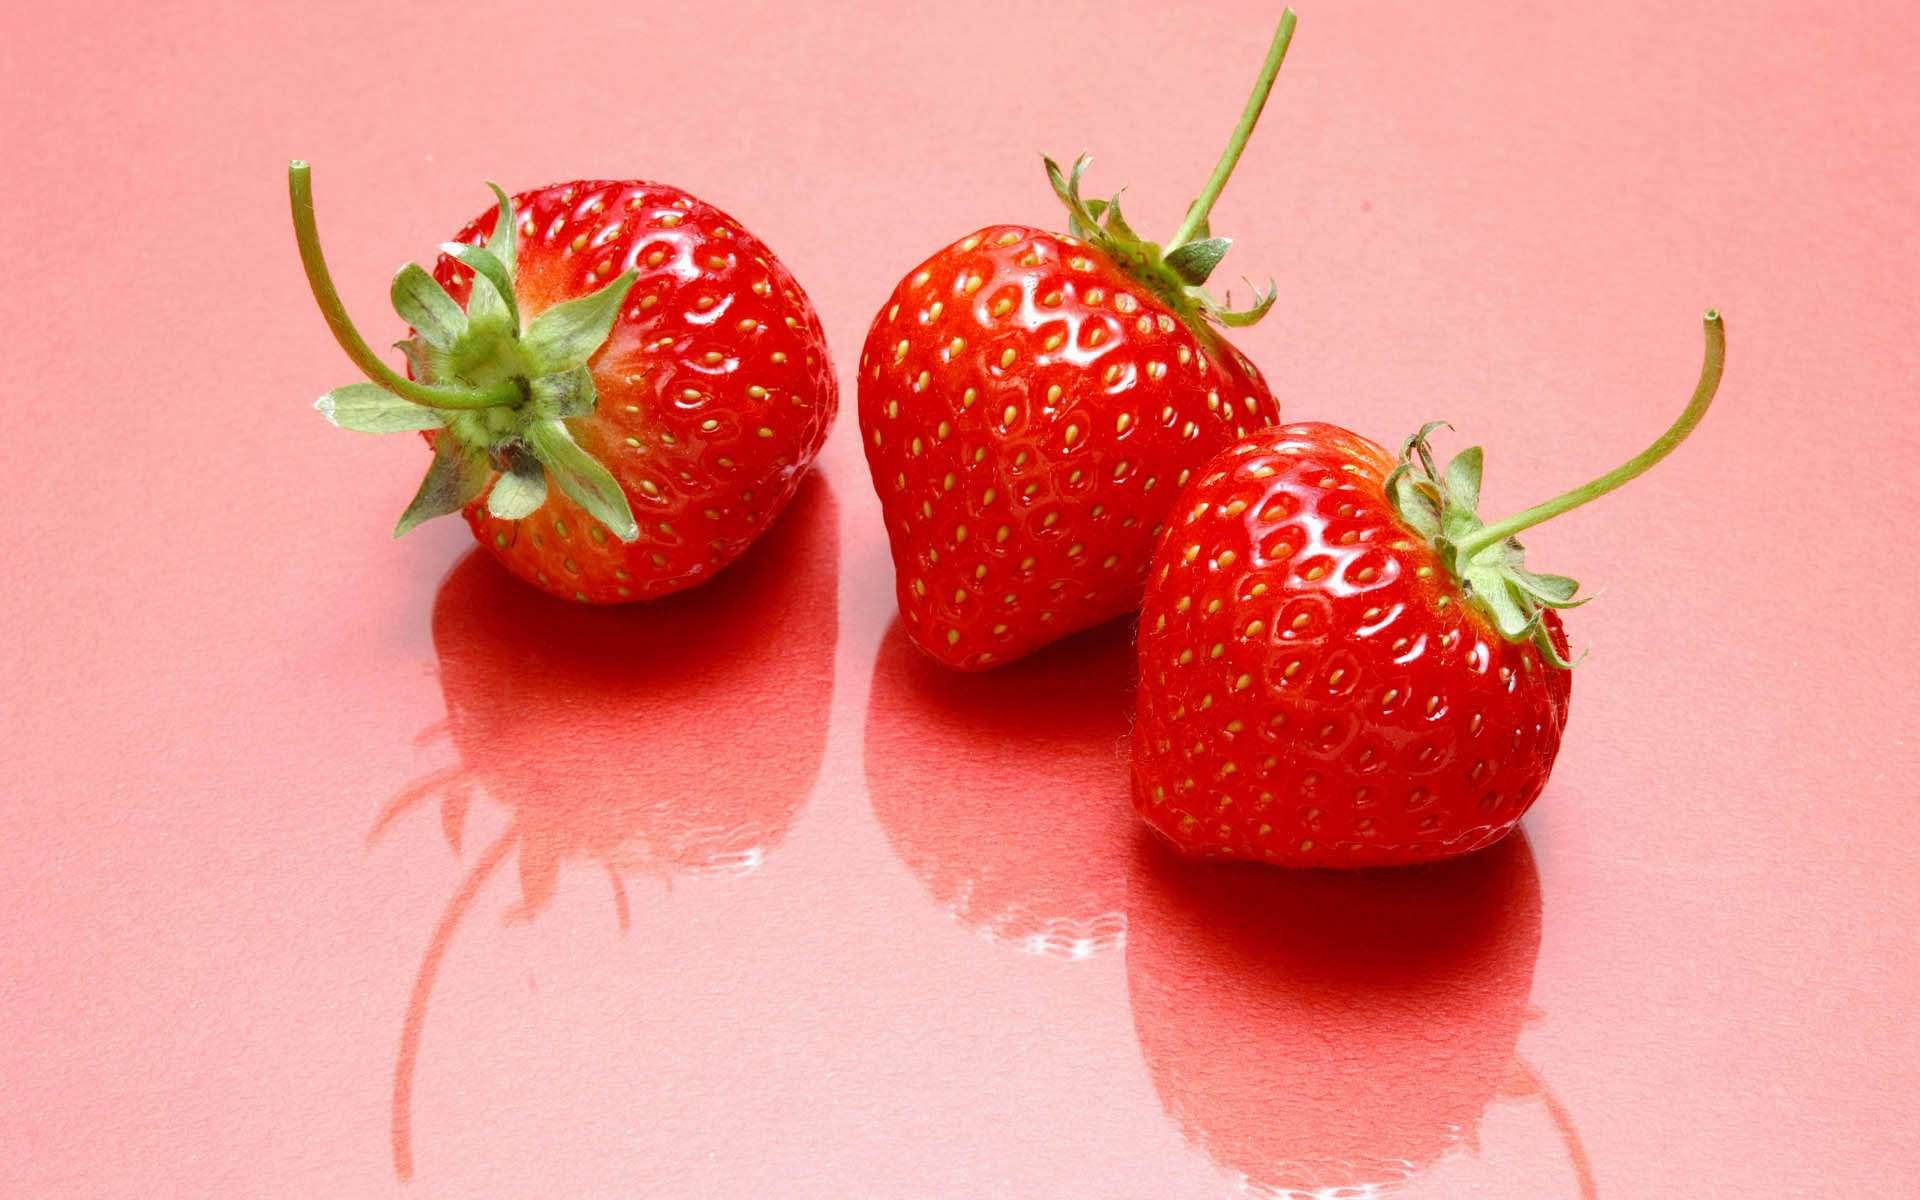 Beautiful Strawberry Wallpapers Strawberry Wallpaper Hd 2908000 Hd Wallpaper Backgrounds Download